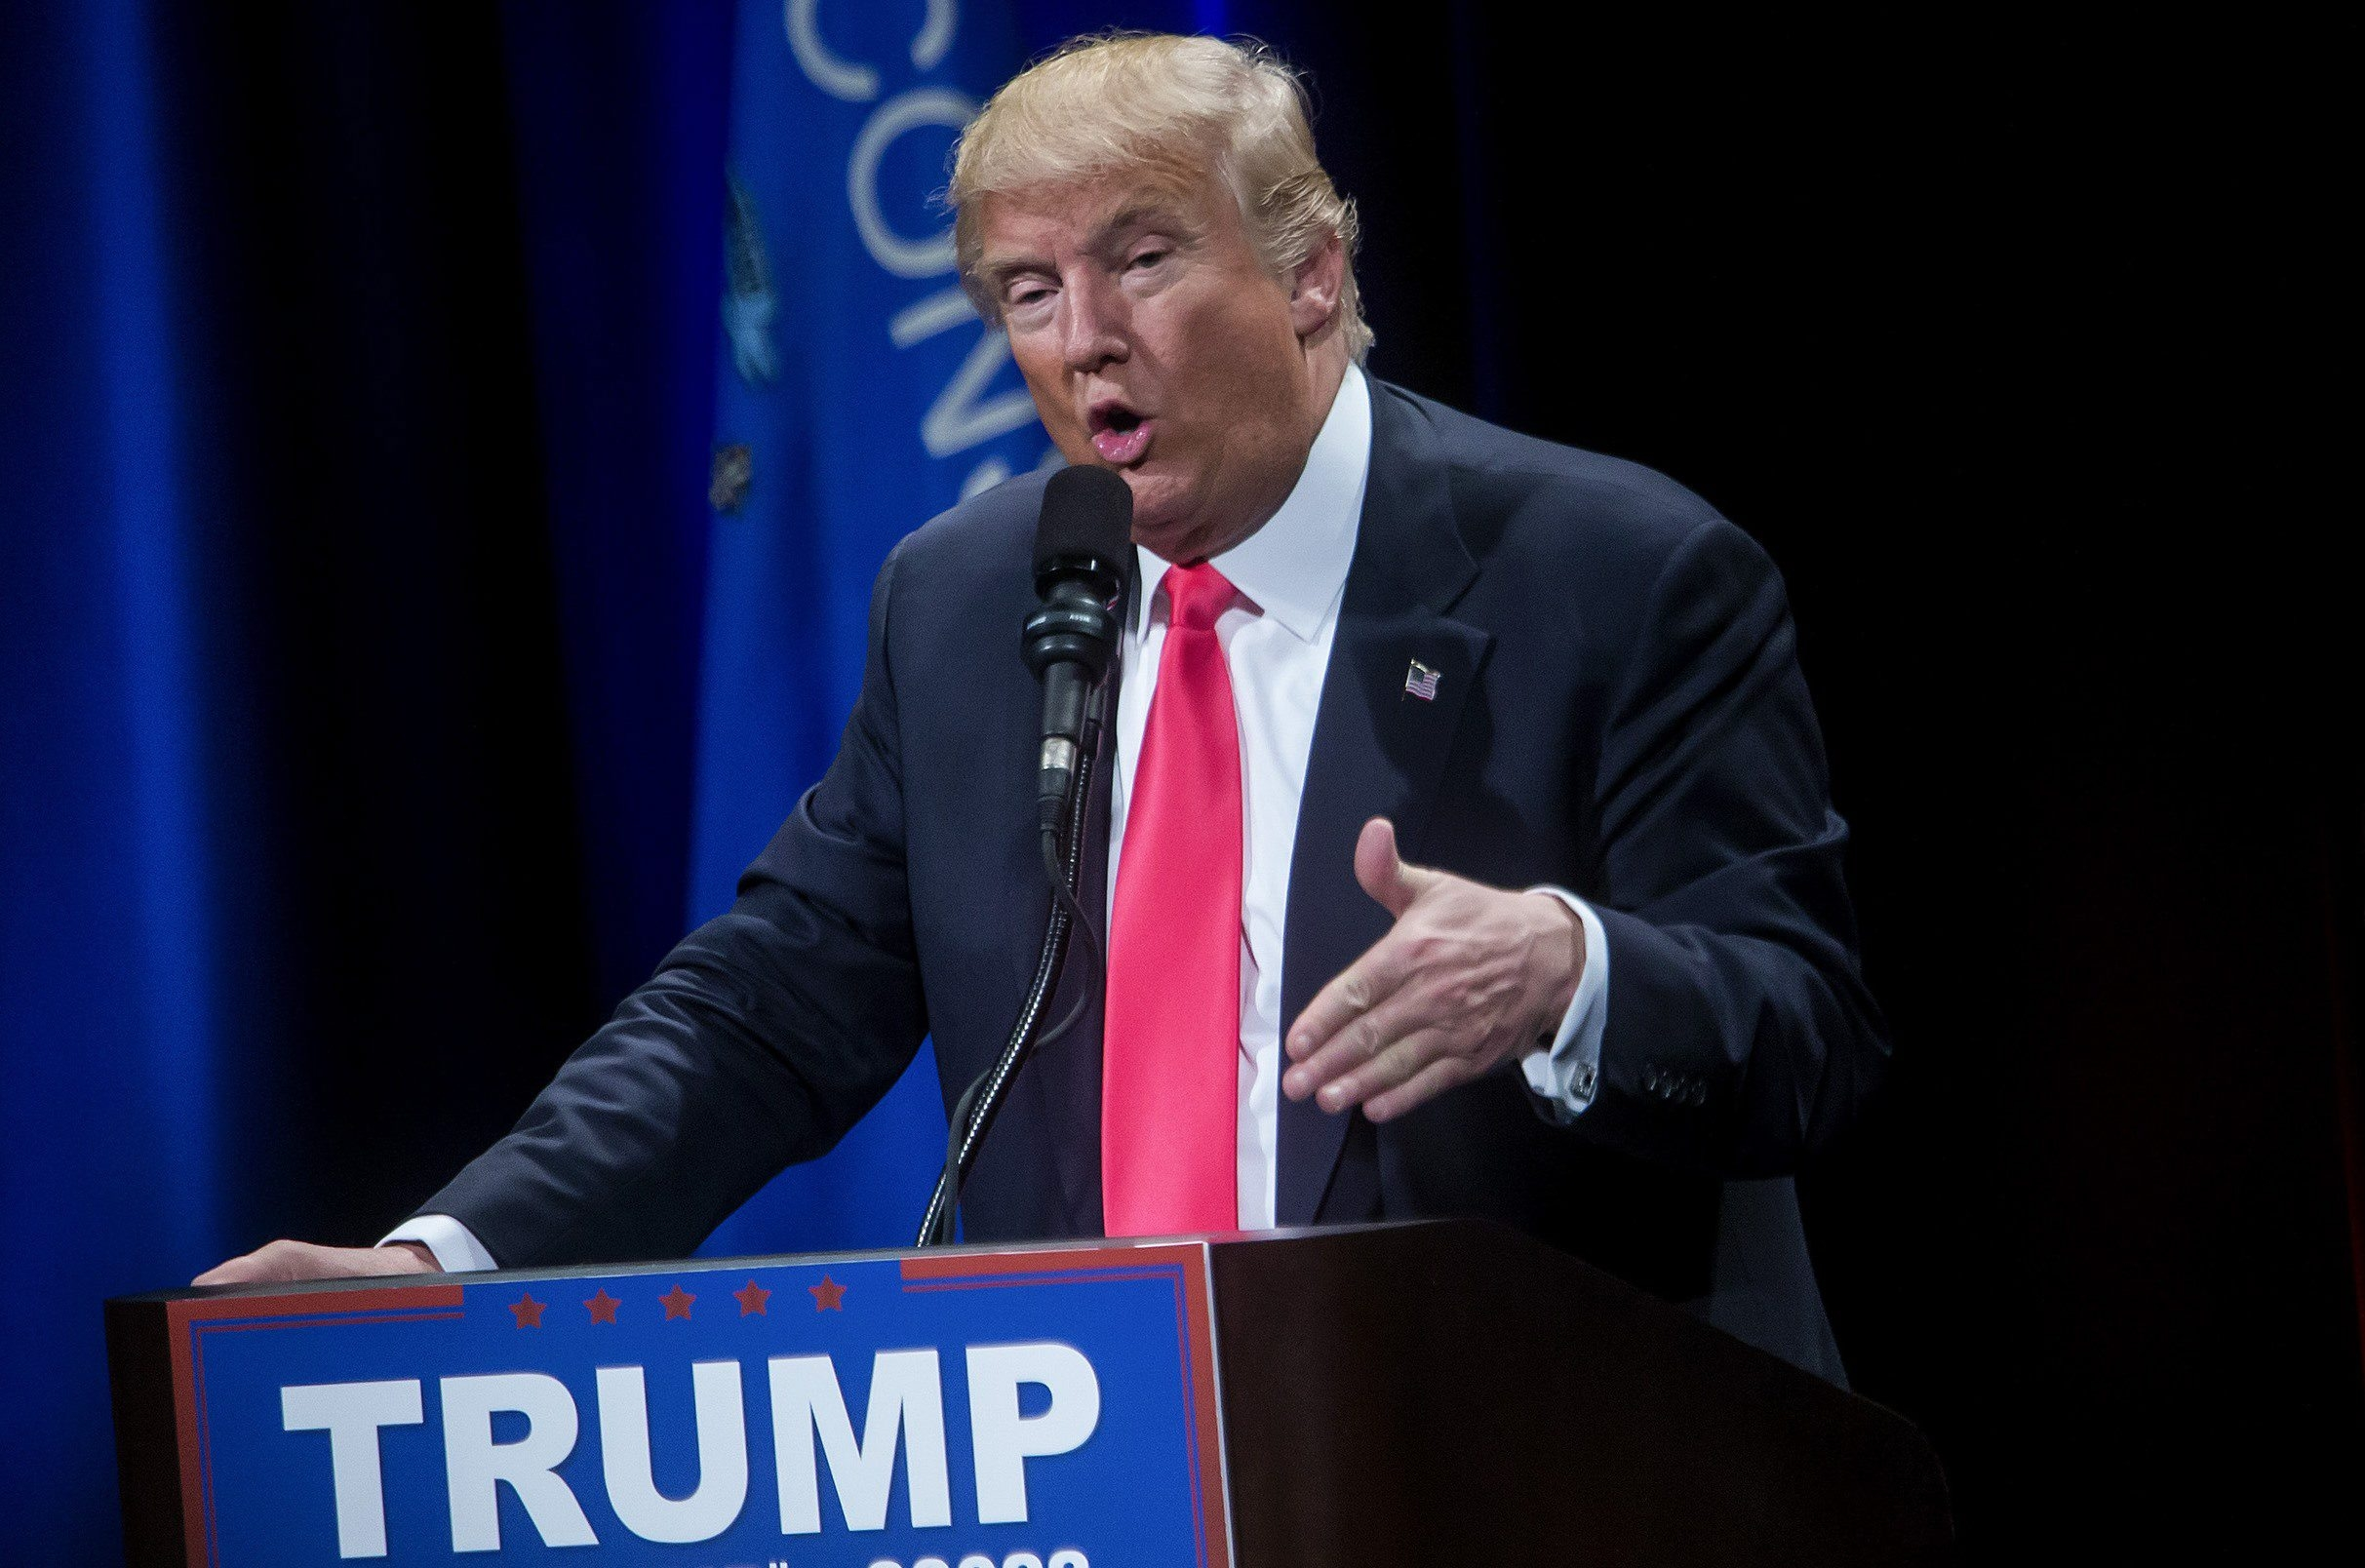 Donald Trump, a Republican presidential candidate, speaks at a campaign event in Milwaukee, April 4, 2016. Trump lost Tuesdays' primary in Wisconsin to Ted Cruz after a series of missteps on the campaign trail, while on the other side of the race, Sen. Bernie Sanders overwhelmingly defeated Hillary Clinton, marking his sixth straight victory. (Eric Thayer/The New York Times)